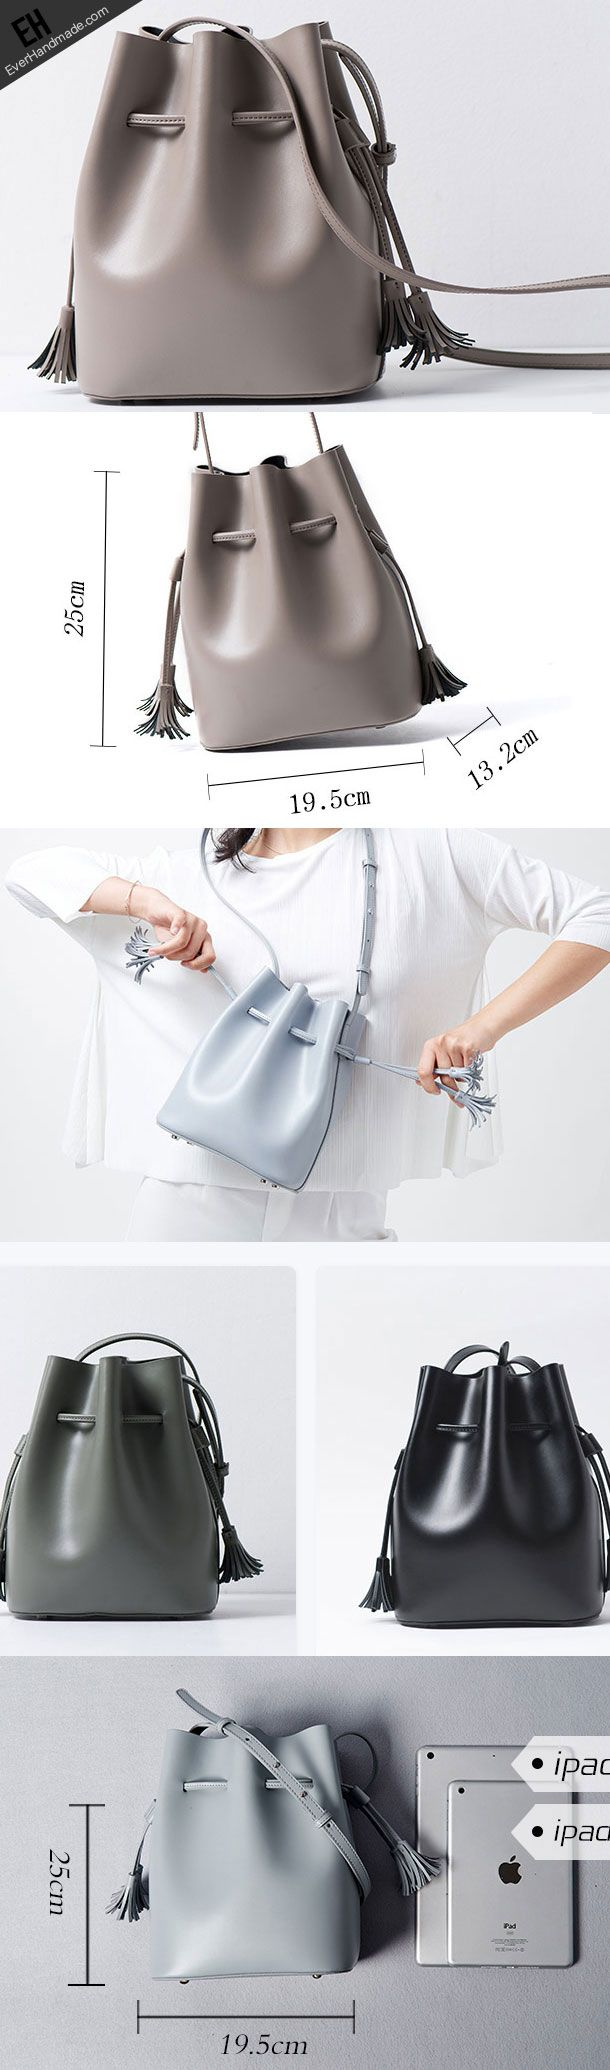 Genuine Leather bucket bag shoulder bag for women leather crossbody bag